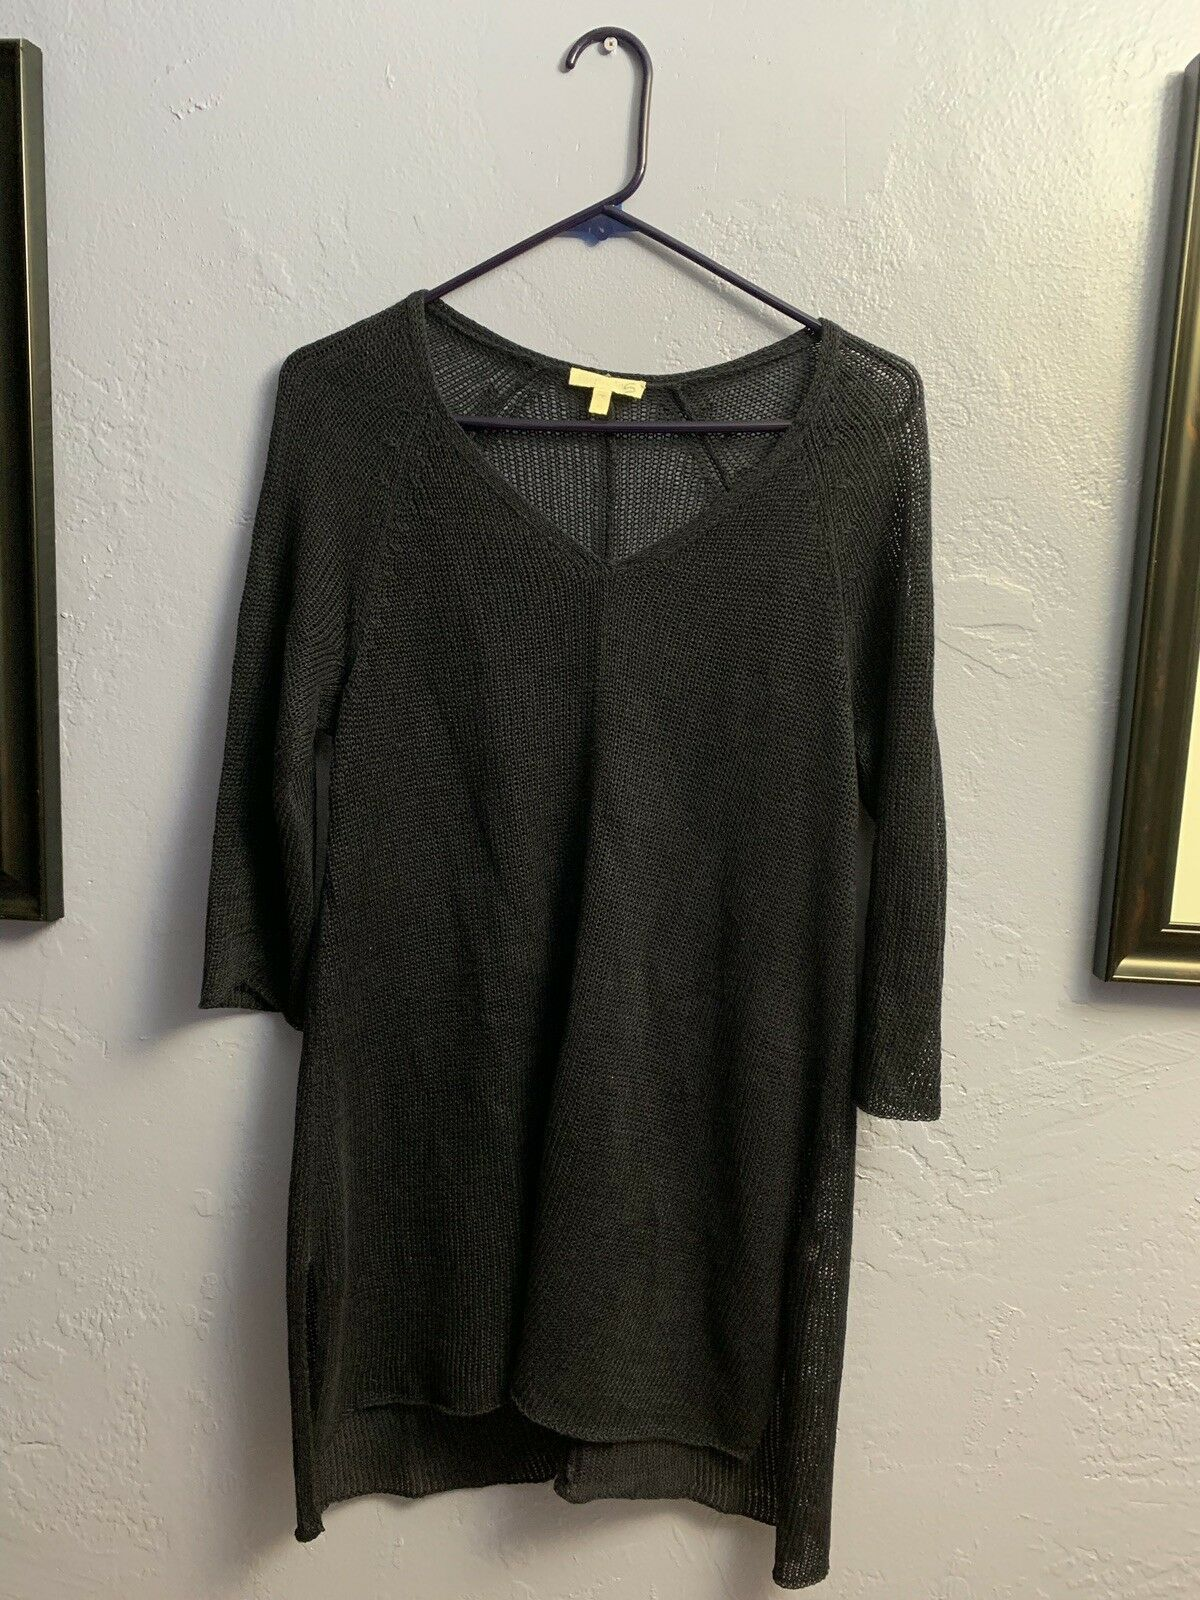 Eileen Fisher Sweater Linen Tunic Cover Up Top Größe XS